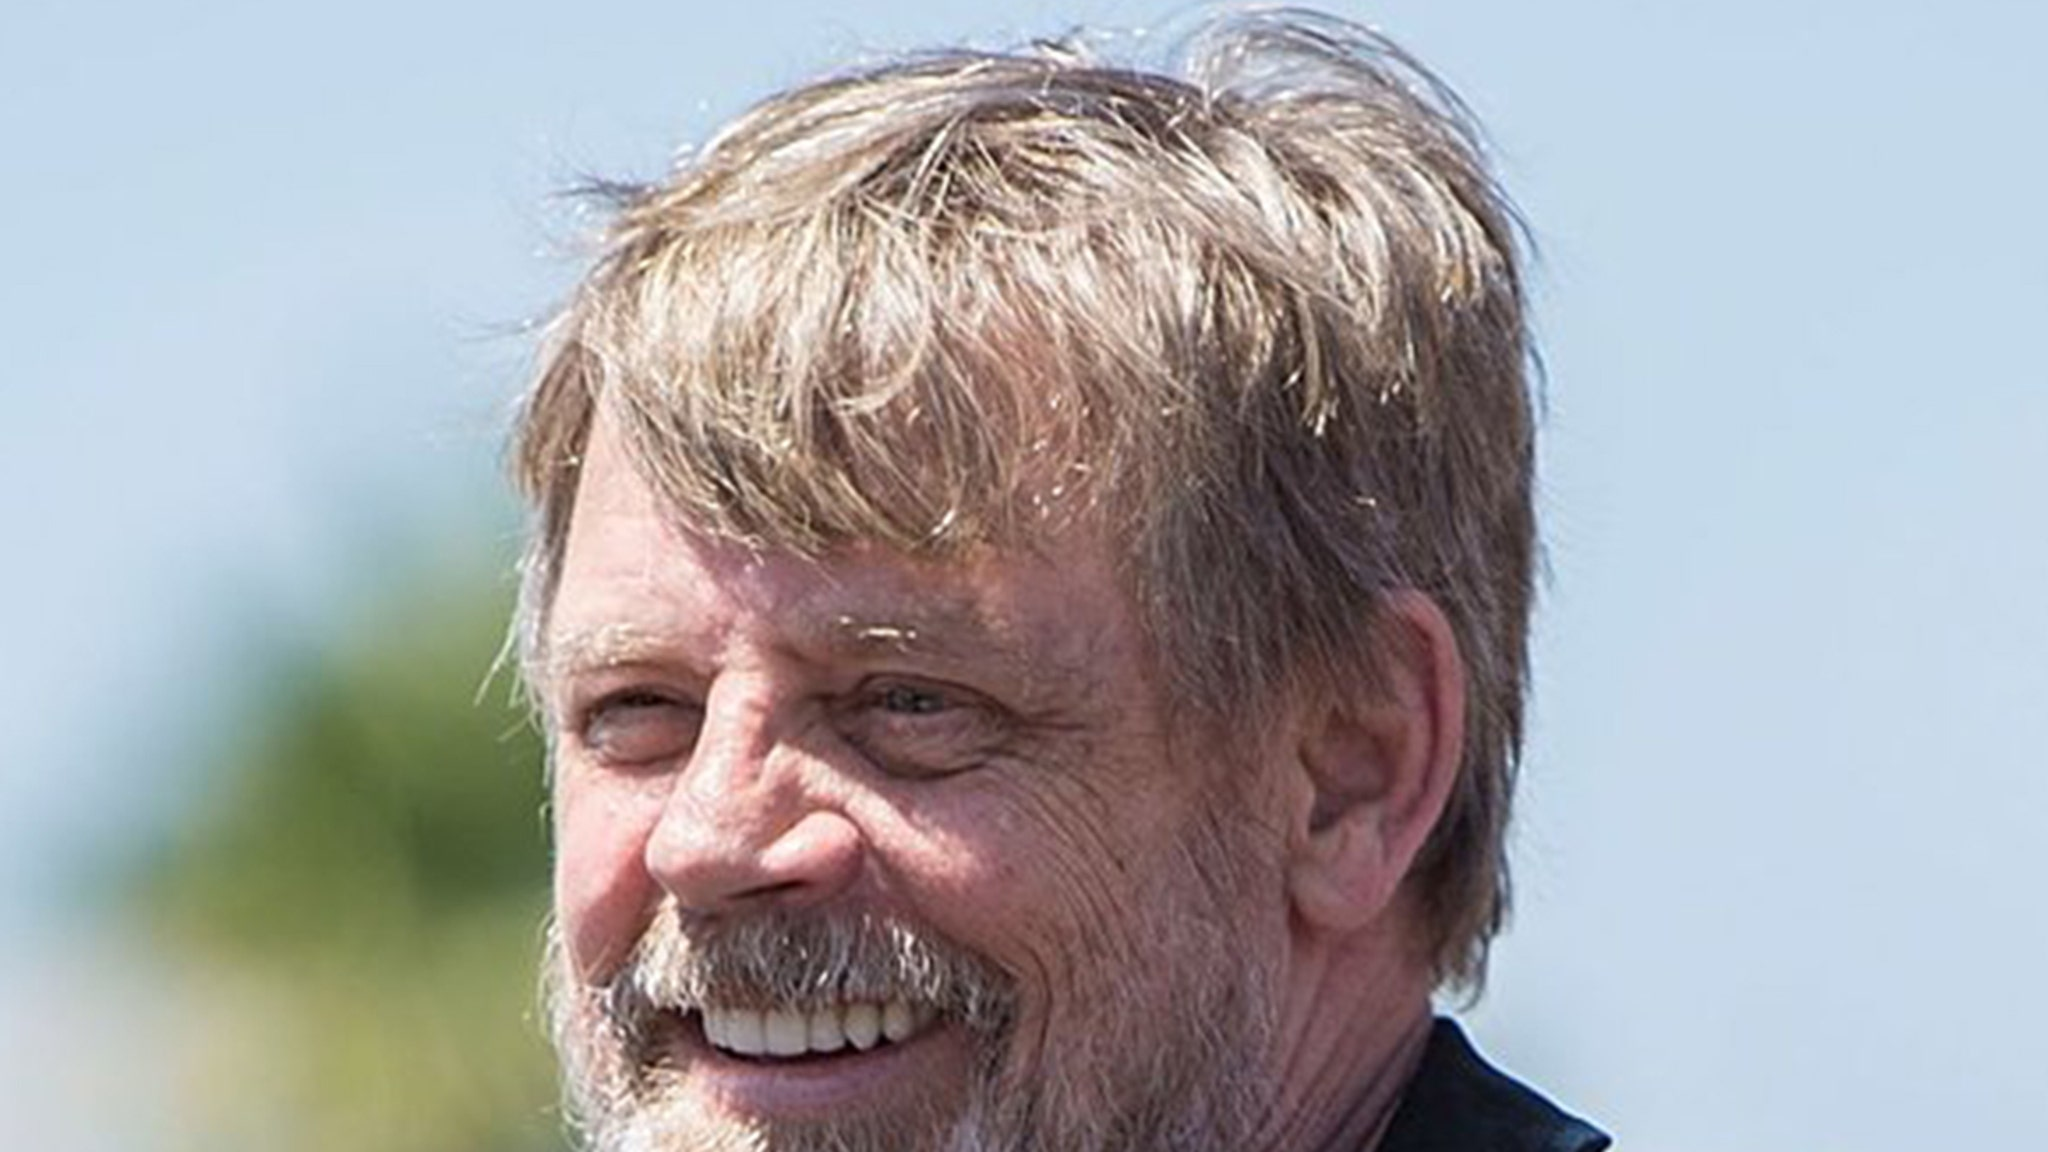 Mark Hamill Proves Theory That Tweeting His Name Will Get Over 1k Likes thumbnail